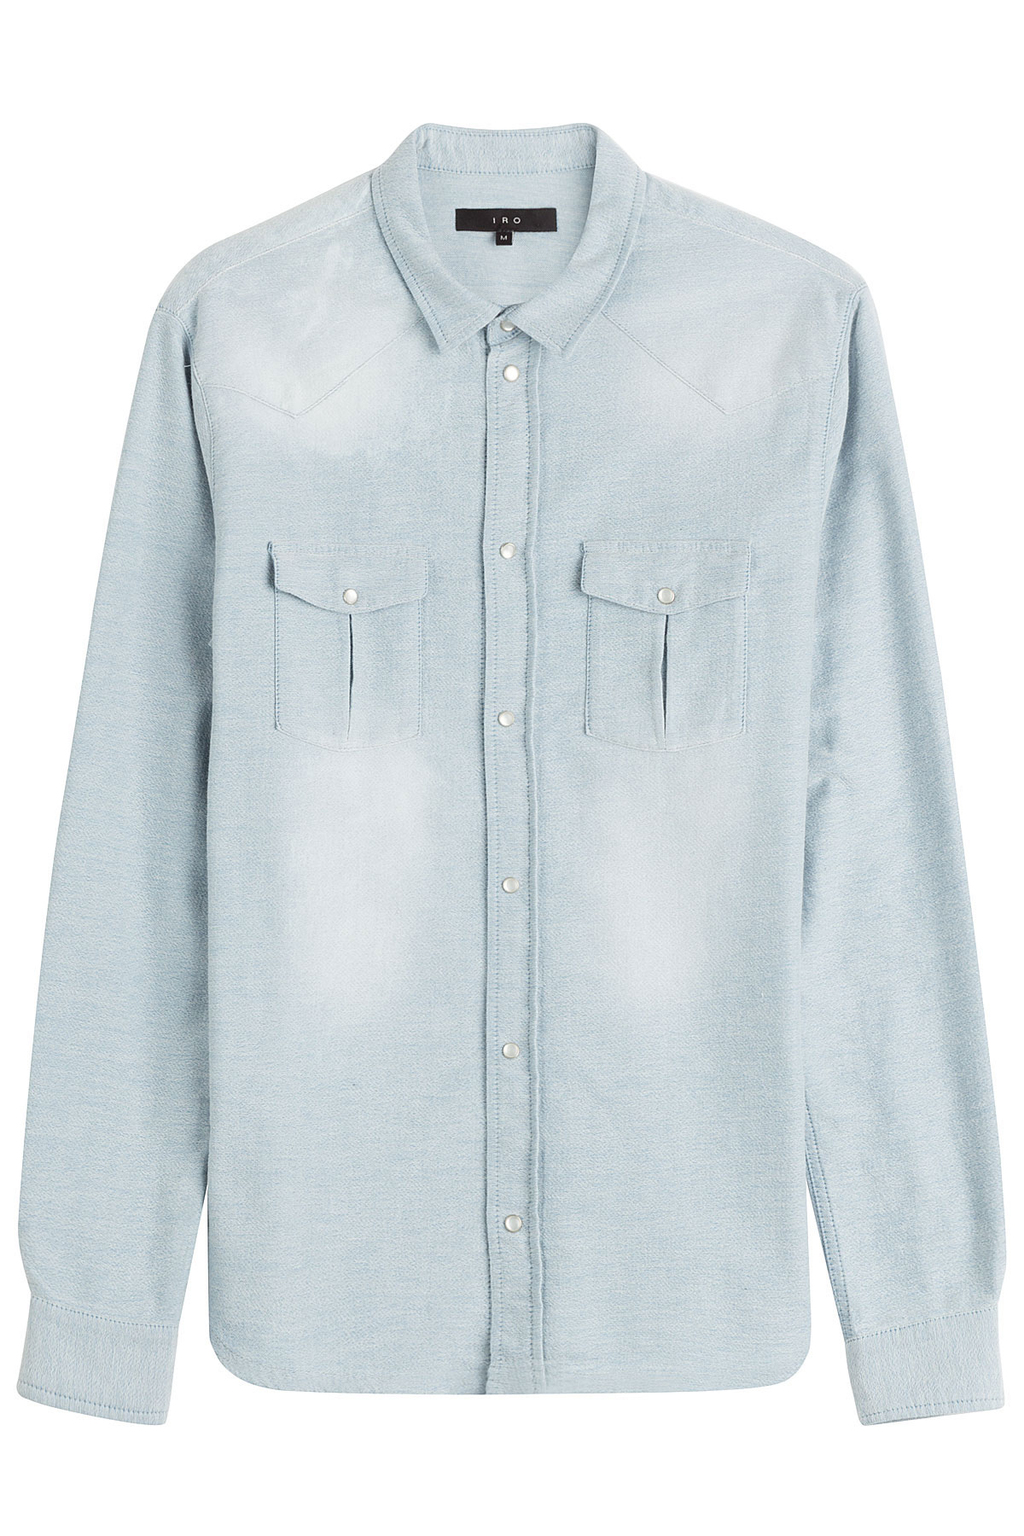 Cotton Shirt - neckline: shirt collar/peter pan/zip with opening; pattern: plain; style: shirt; predominant colour: pale blue; occasions: casual; length: standard; fibres: cotton - 100%; fit: body skimming; sleeve length: long sleeve; sleeve style: standard; texture group: cotton feel fabrics; bust detail: bulky details at bust; pattern type: fabric; season: s/s 2016; wardrobe: highlight